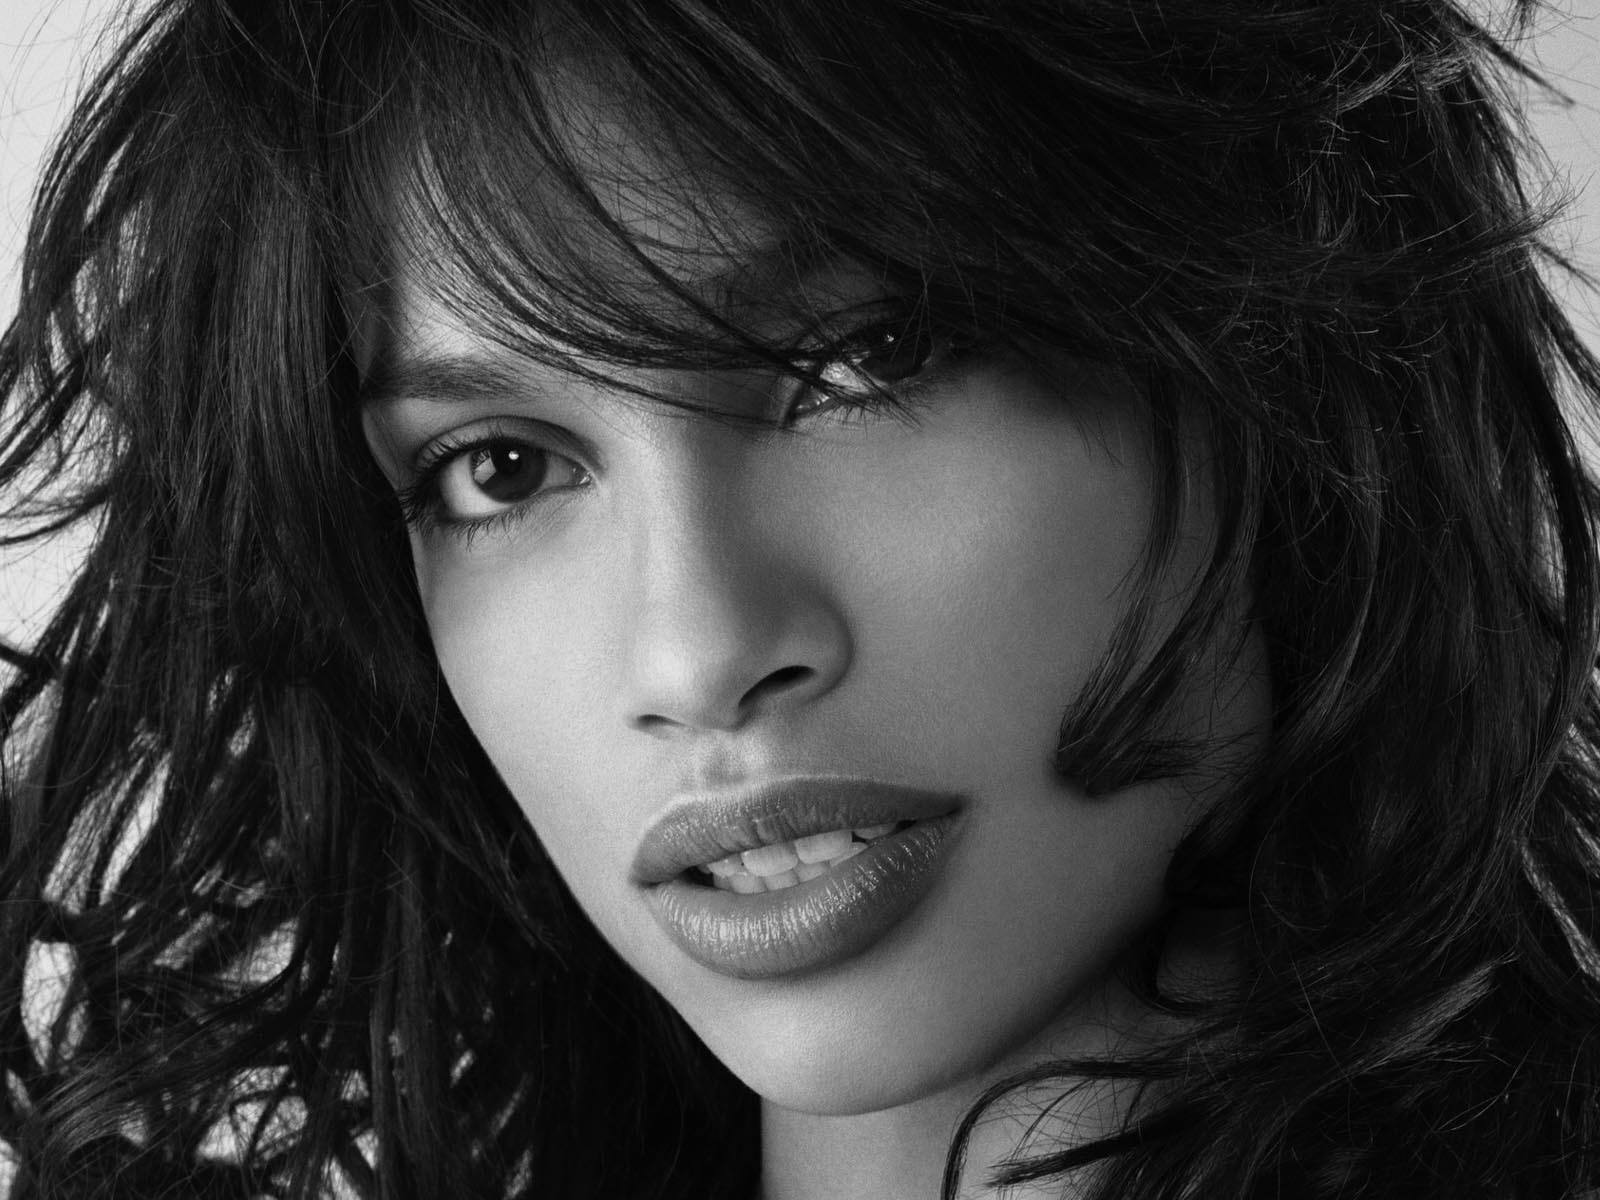 rosario_dawson_monochrome_greyscale_desktop_wallpaper-normal